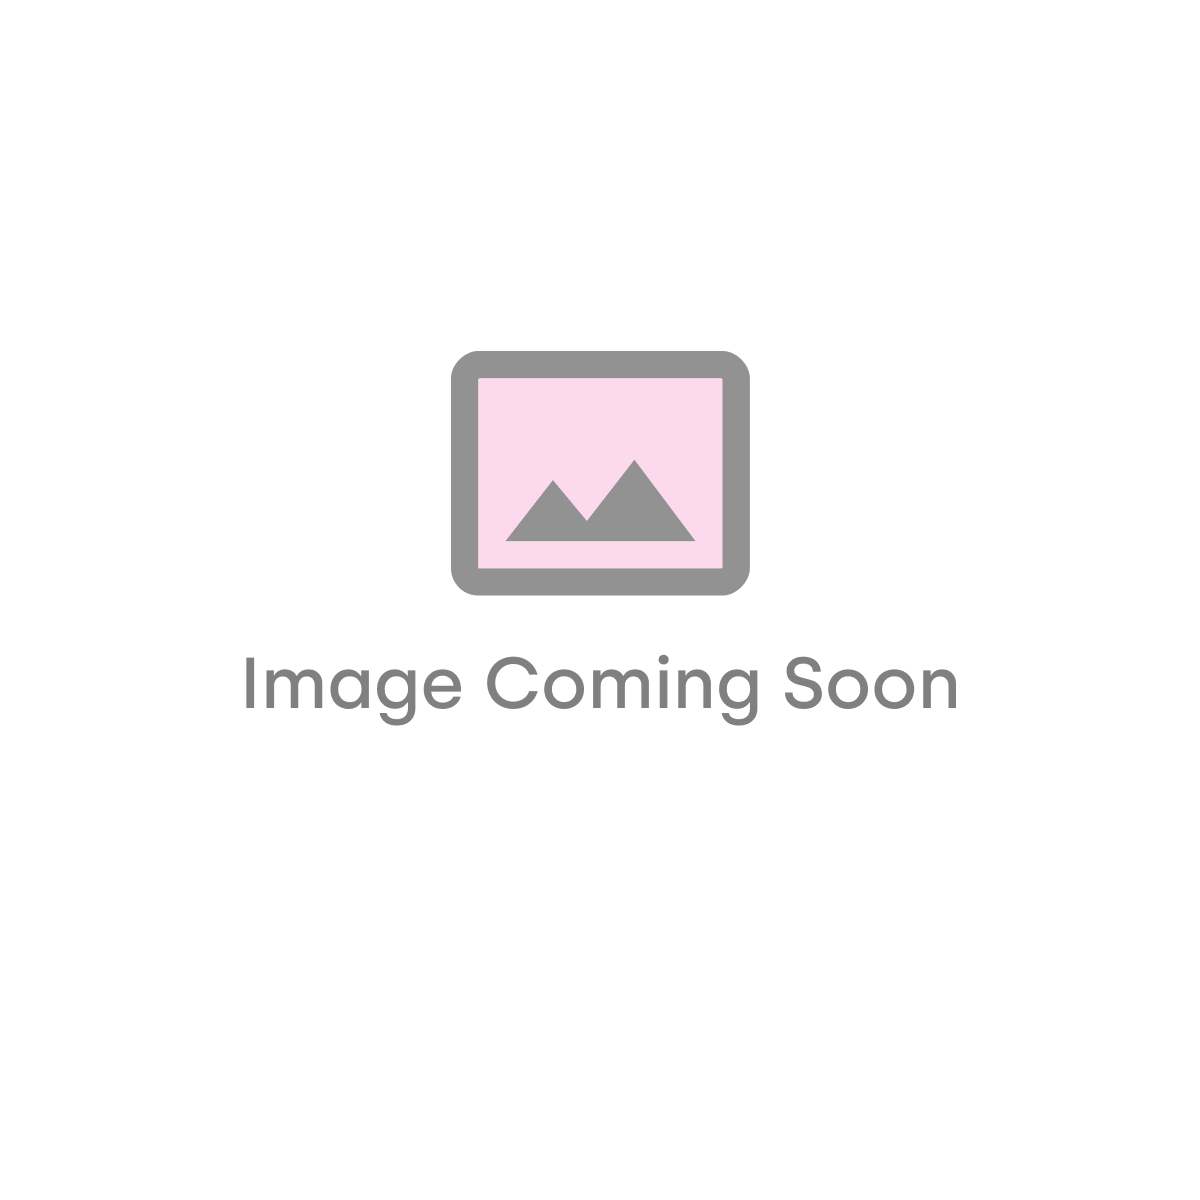 Moods Bathrooms to Love Solarna L-Shape 1500 x 700mm Shower Bath inc. Screen - Left Hand (12242)